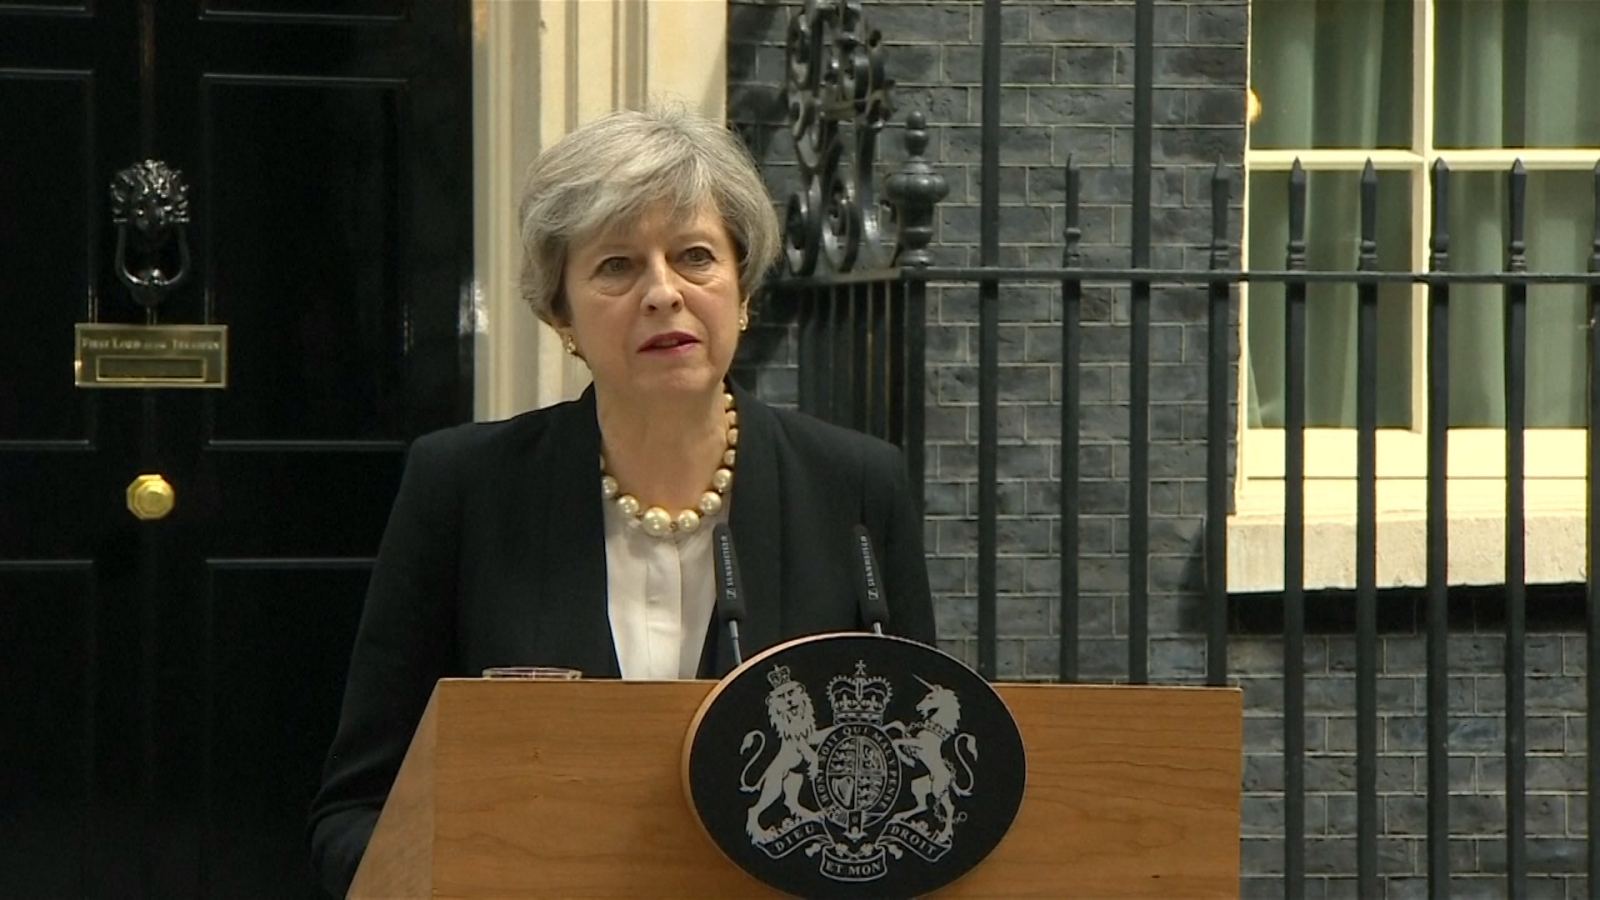 u-k-prime-minister-may-condemns-callous-terrorist-attack-in-manchester